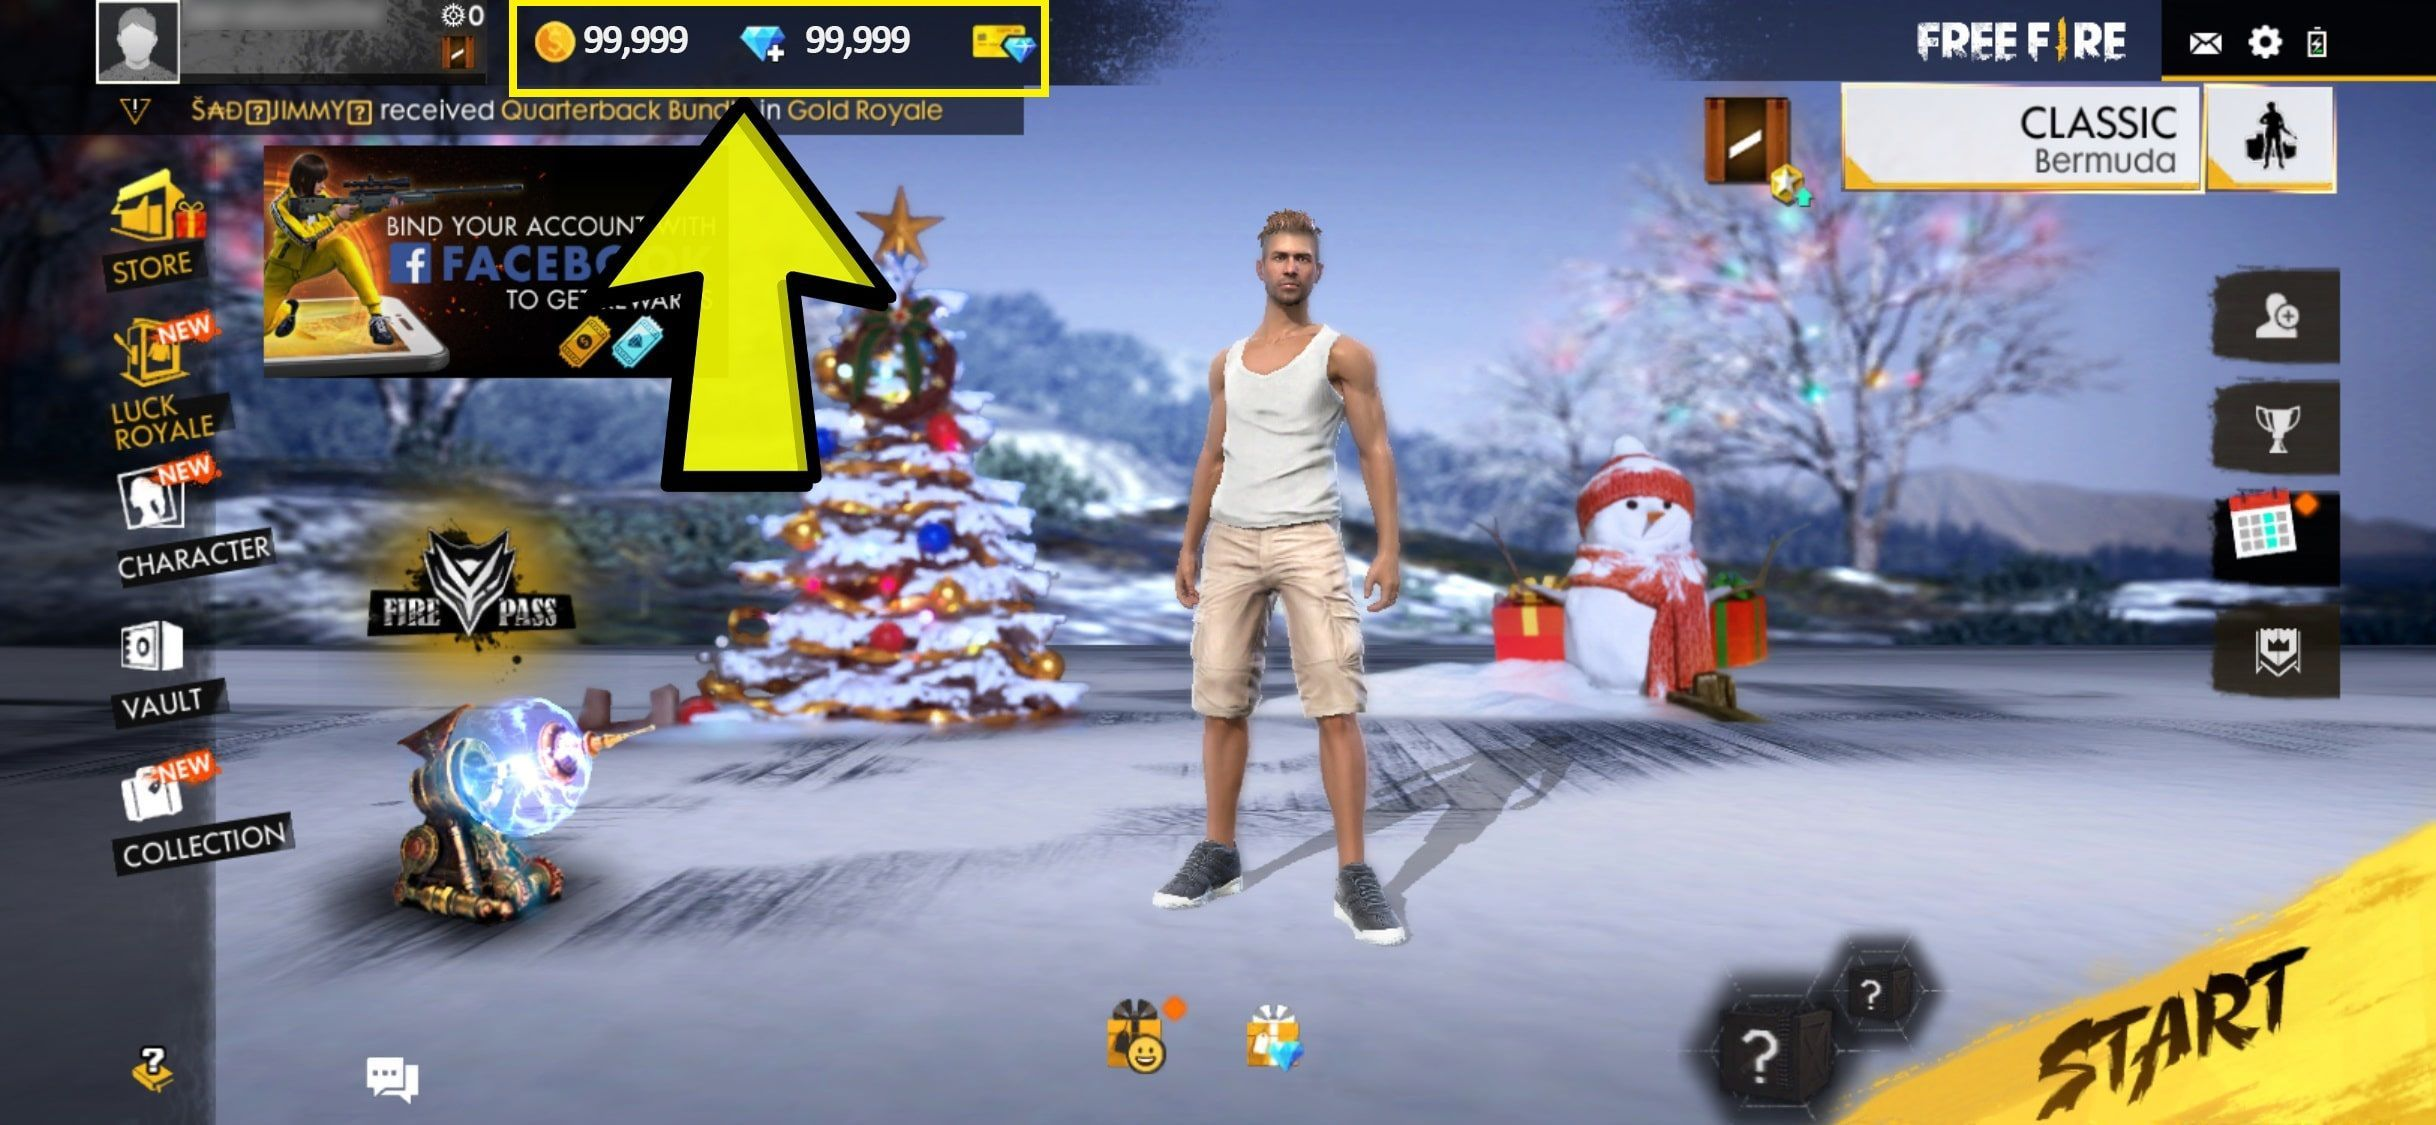 Apk Obb Free Fire in 2020 Android hacks, Download hacks